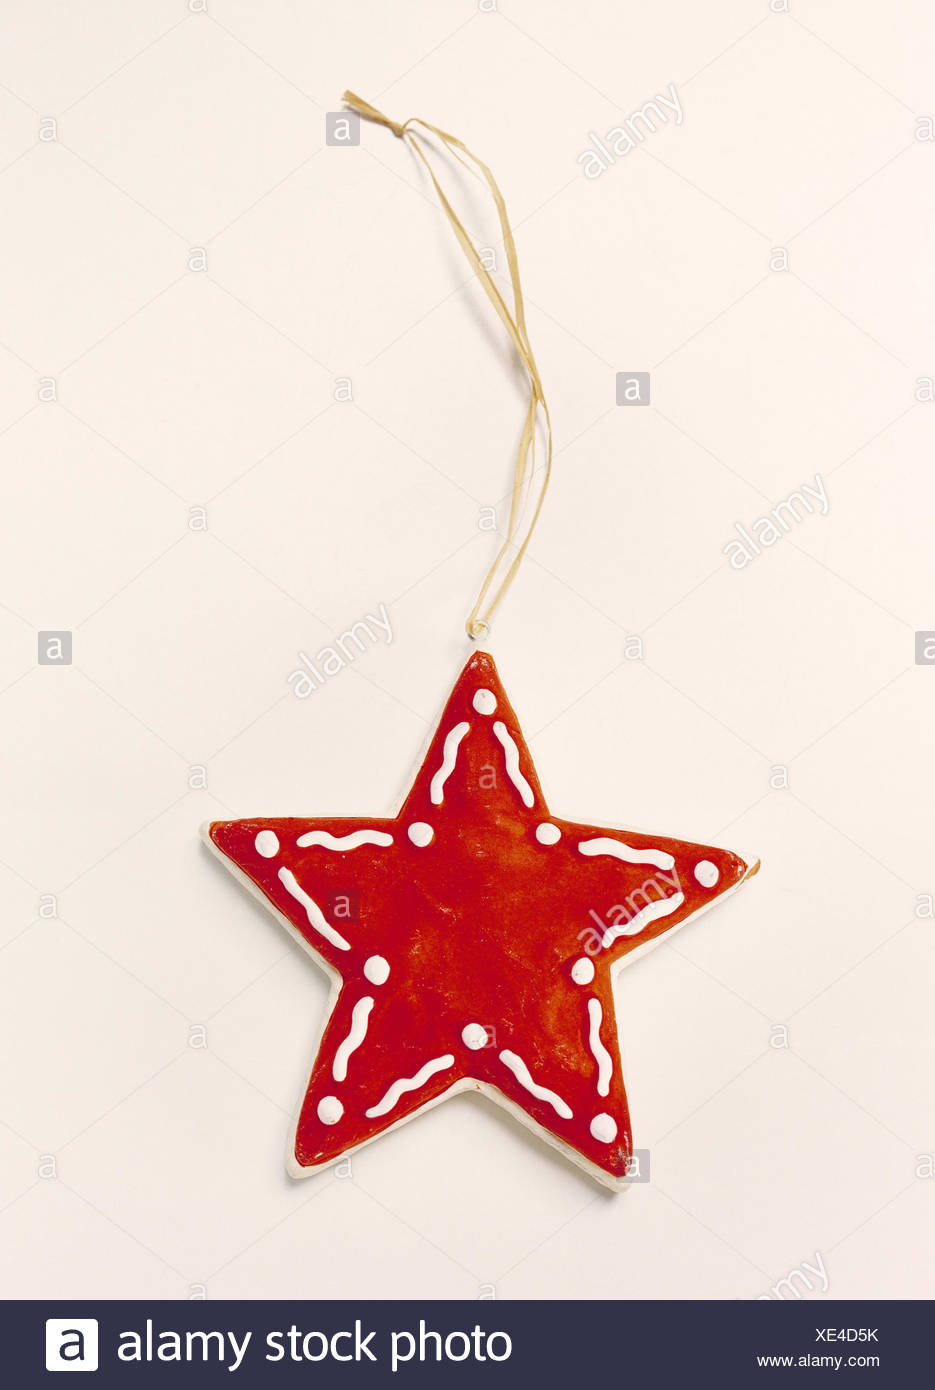 christmas tree decorations christmas decoration decoration object manual labour hand made red white ornamentally still life studio cut out - Cut Out Christmas Decorations